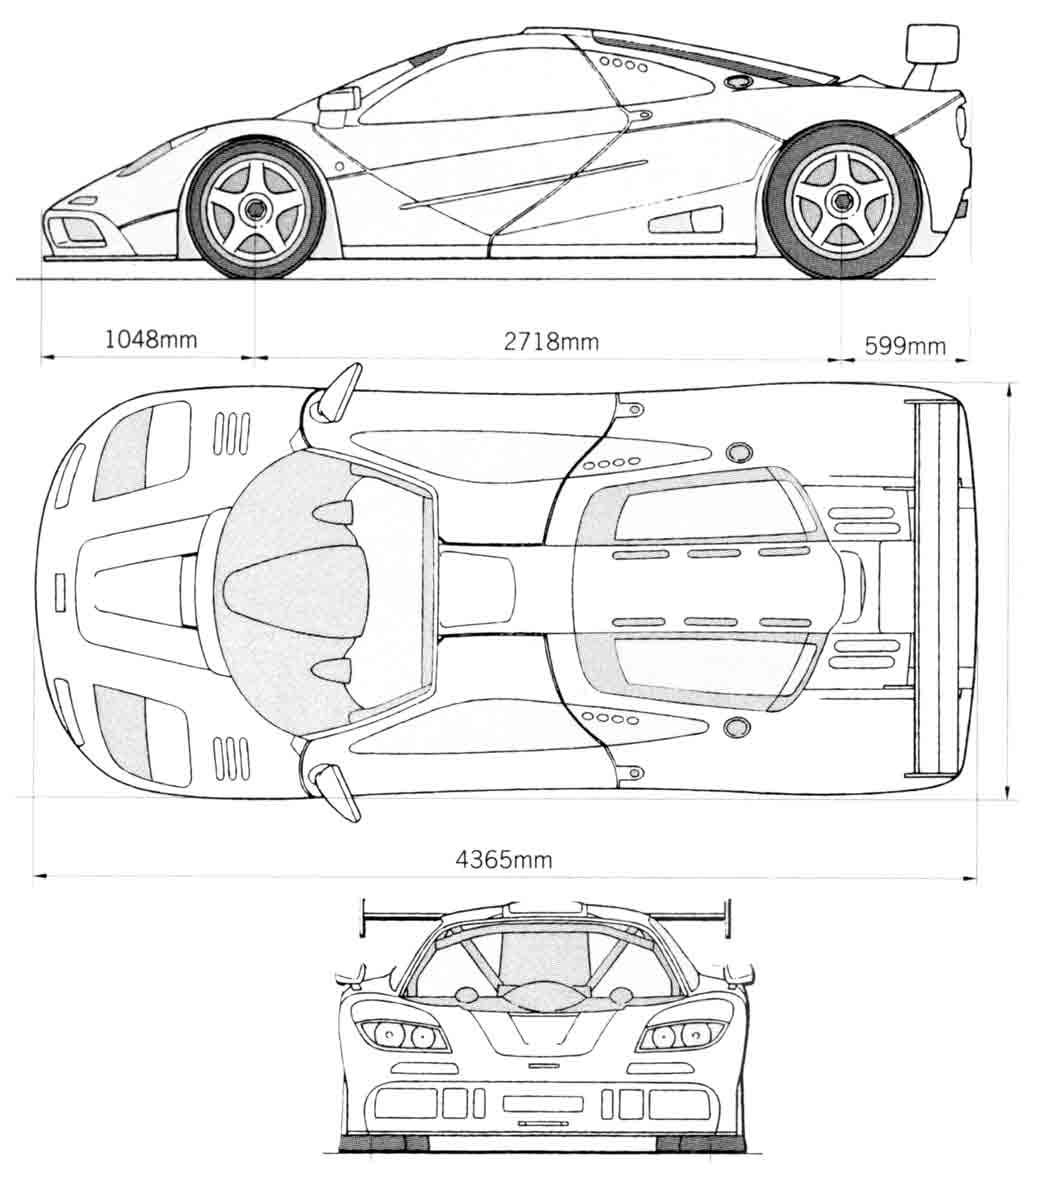 mclaren f1 lm 1989 blueprint - download free blueprint for 3d modeling